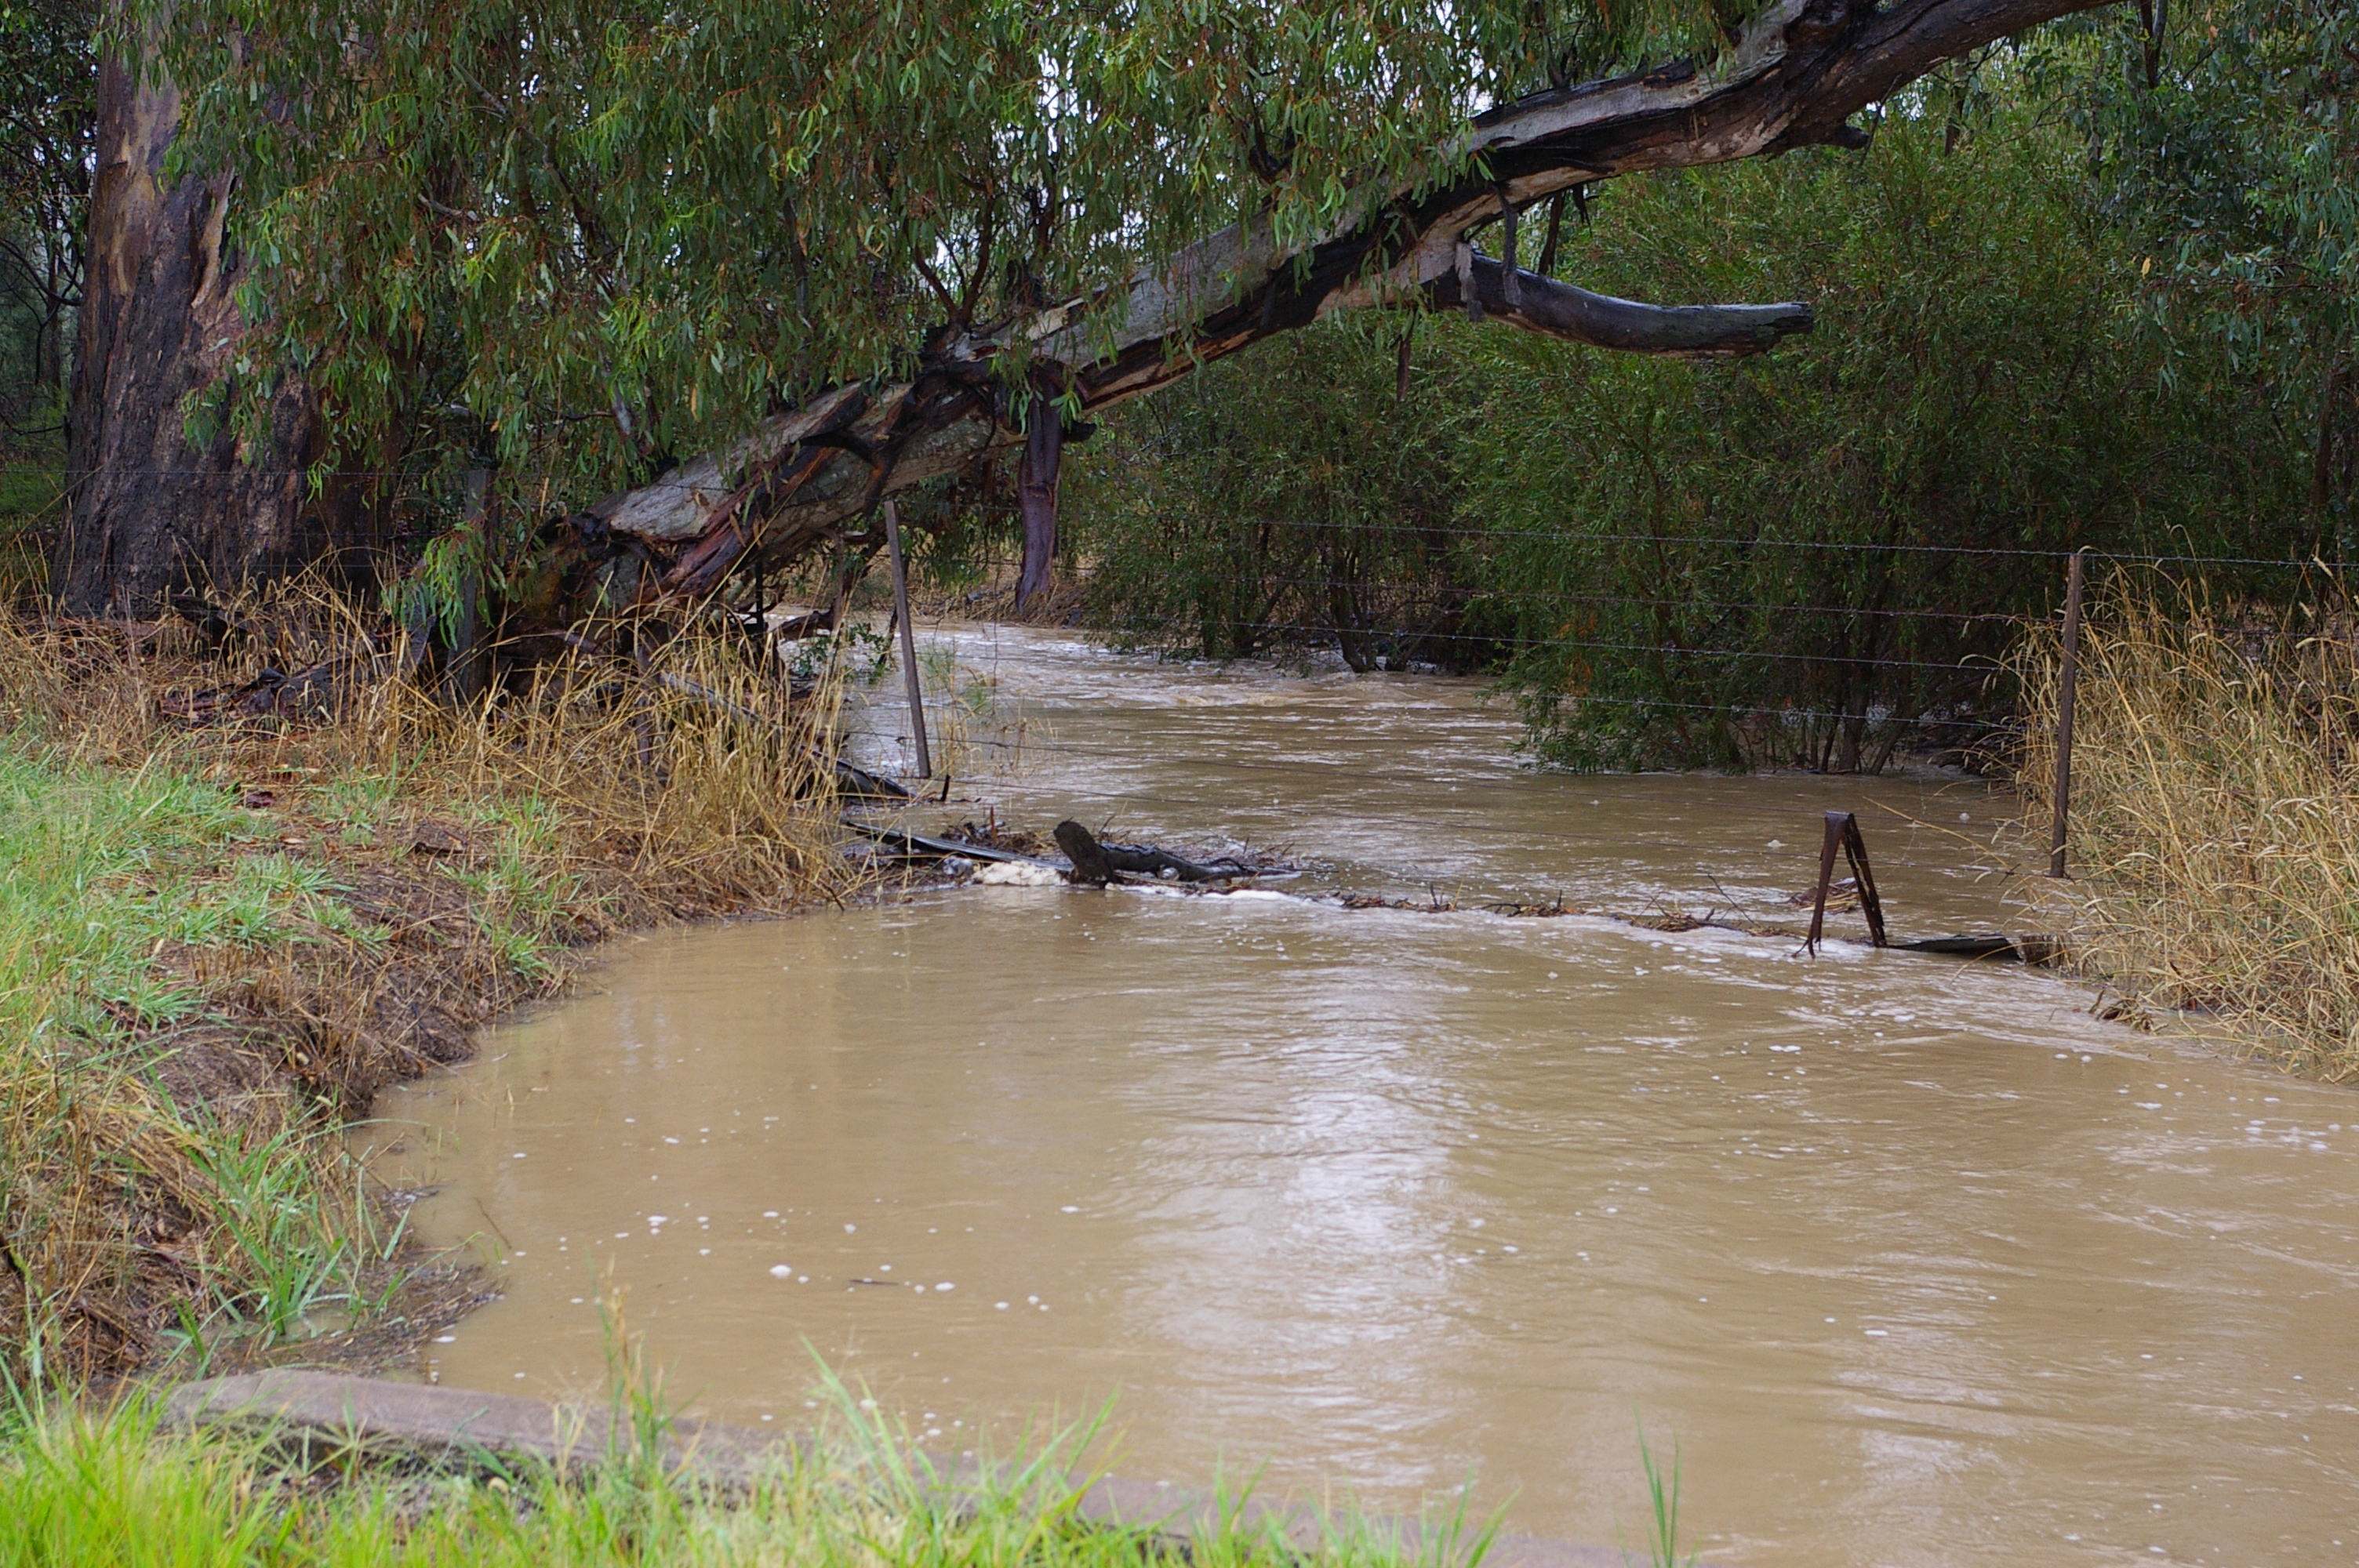 Long Gully Creek in flood, Mar 2012, flowing through fence into Murrnong. At this level the water flows out from the creek onto the floodplain.